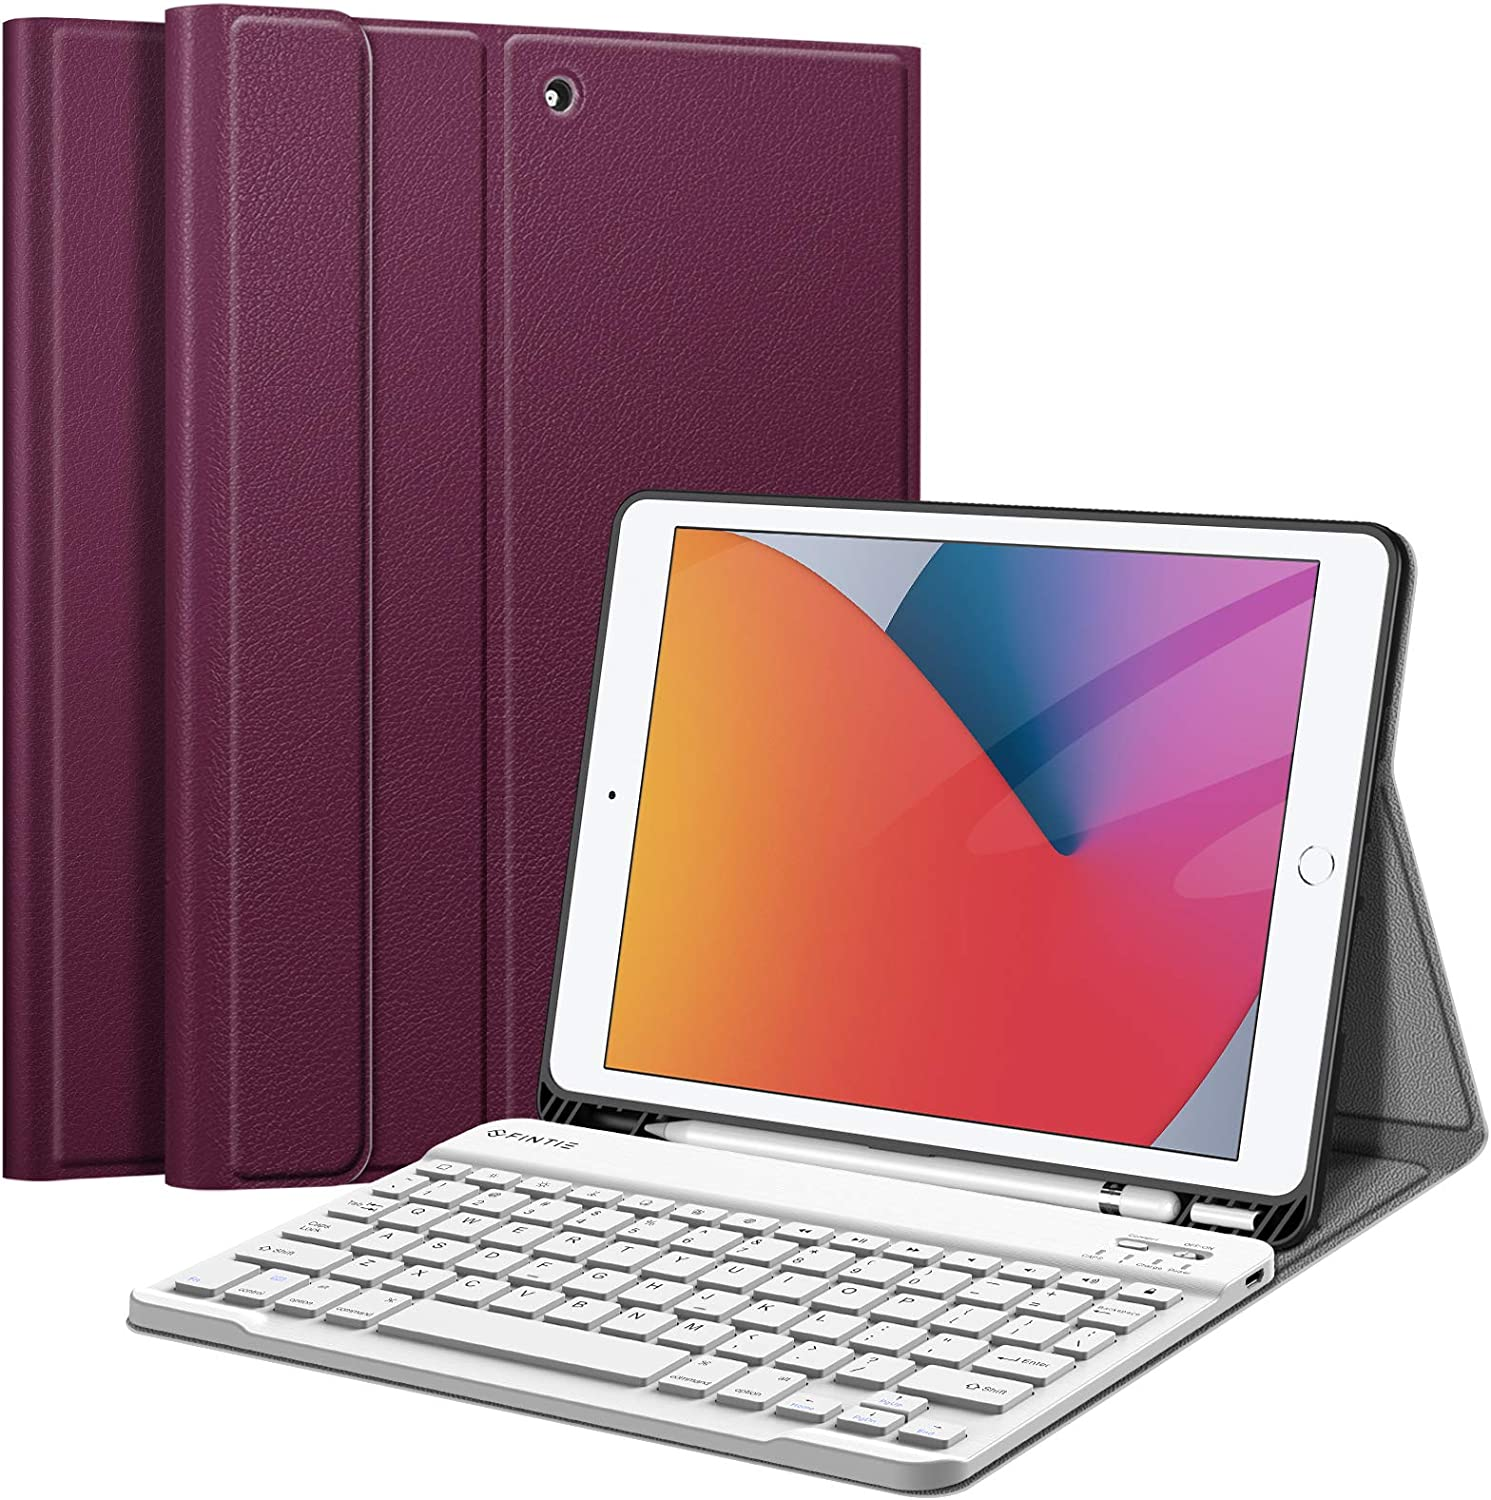 Fintie Keyboard Case for iPad 9th / 8th / 7th Generation (2021/2020/2019) 10.2 Inch, Soft TPU Back Stand Cover with Pencil Holder, Magnetically Detachable Wireless Bluetooth Keyboard, Purple